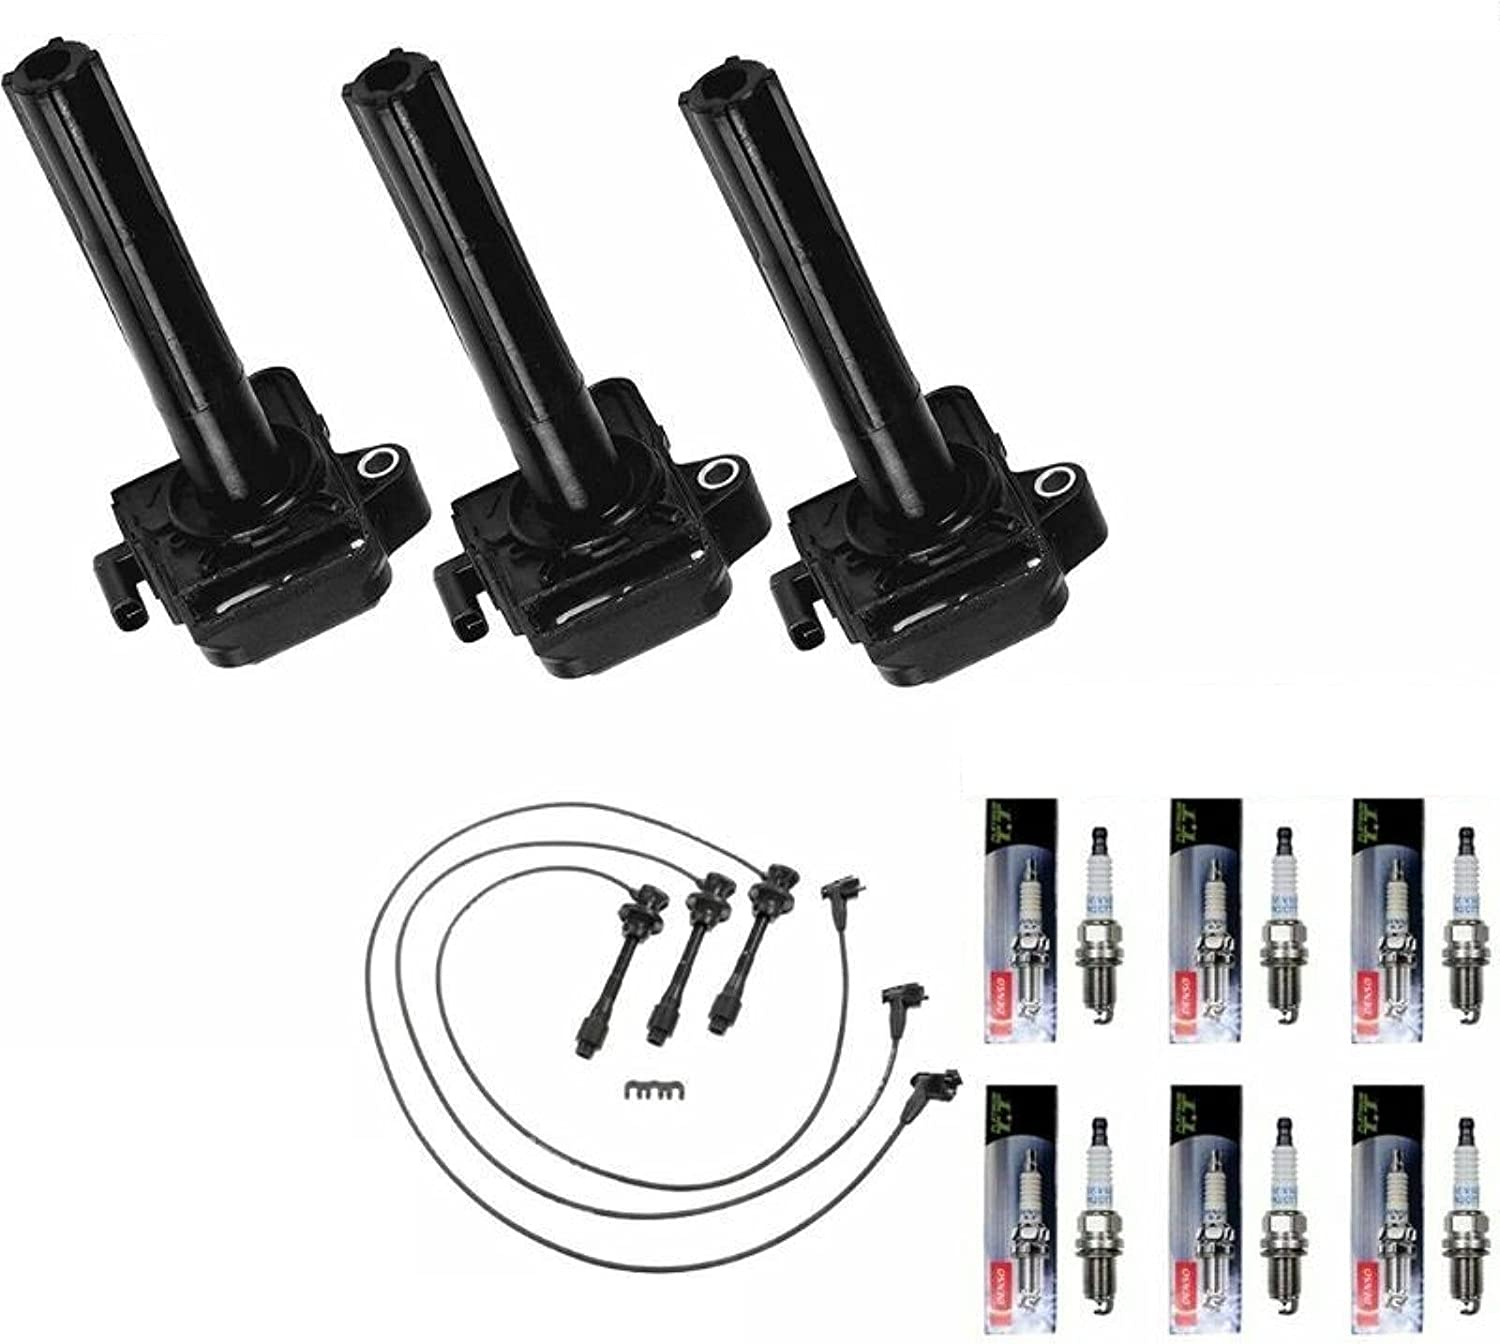 Sale price Phoenix Mall MCK 3pcs Ignition Coil Pack And Spark Platinum Wire Plug Se With